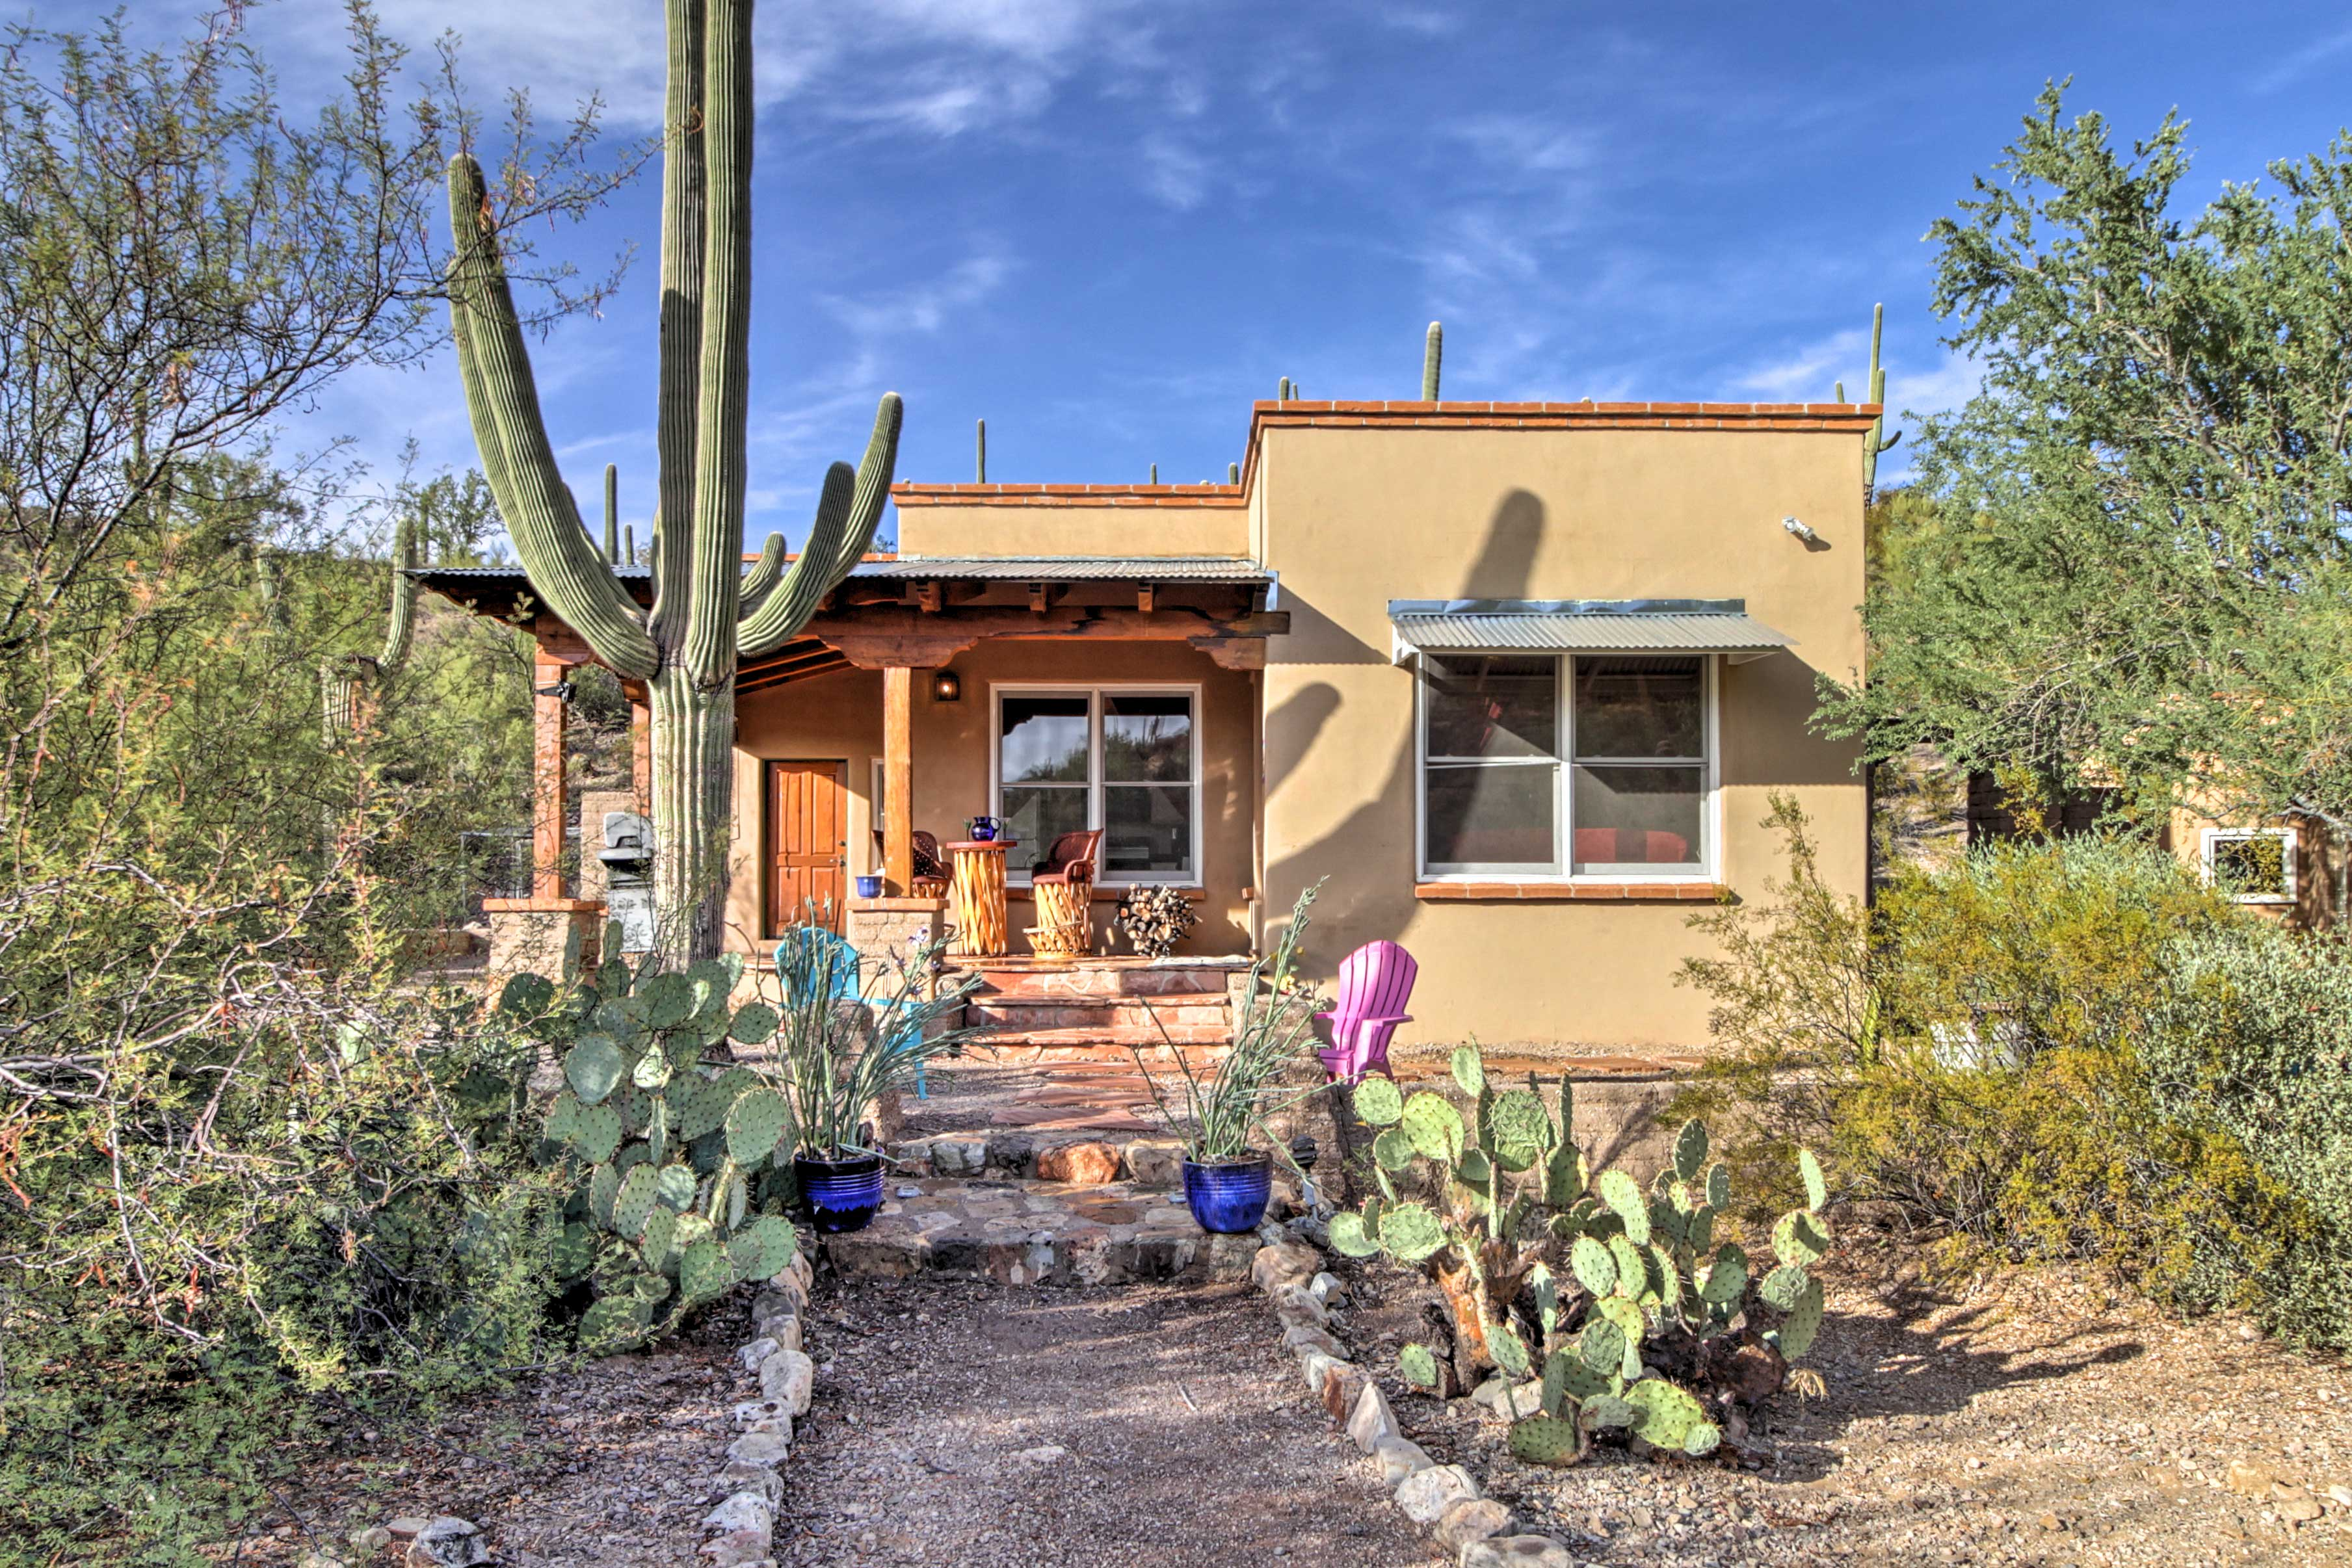 Tucson Vacation Rental | 1BR | 1BA | 750 Sq Ft | Steps Required